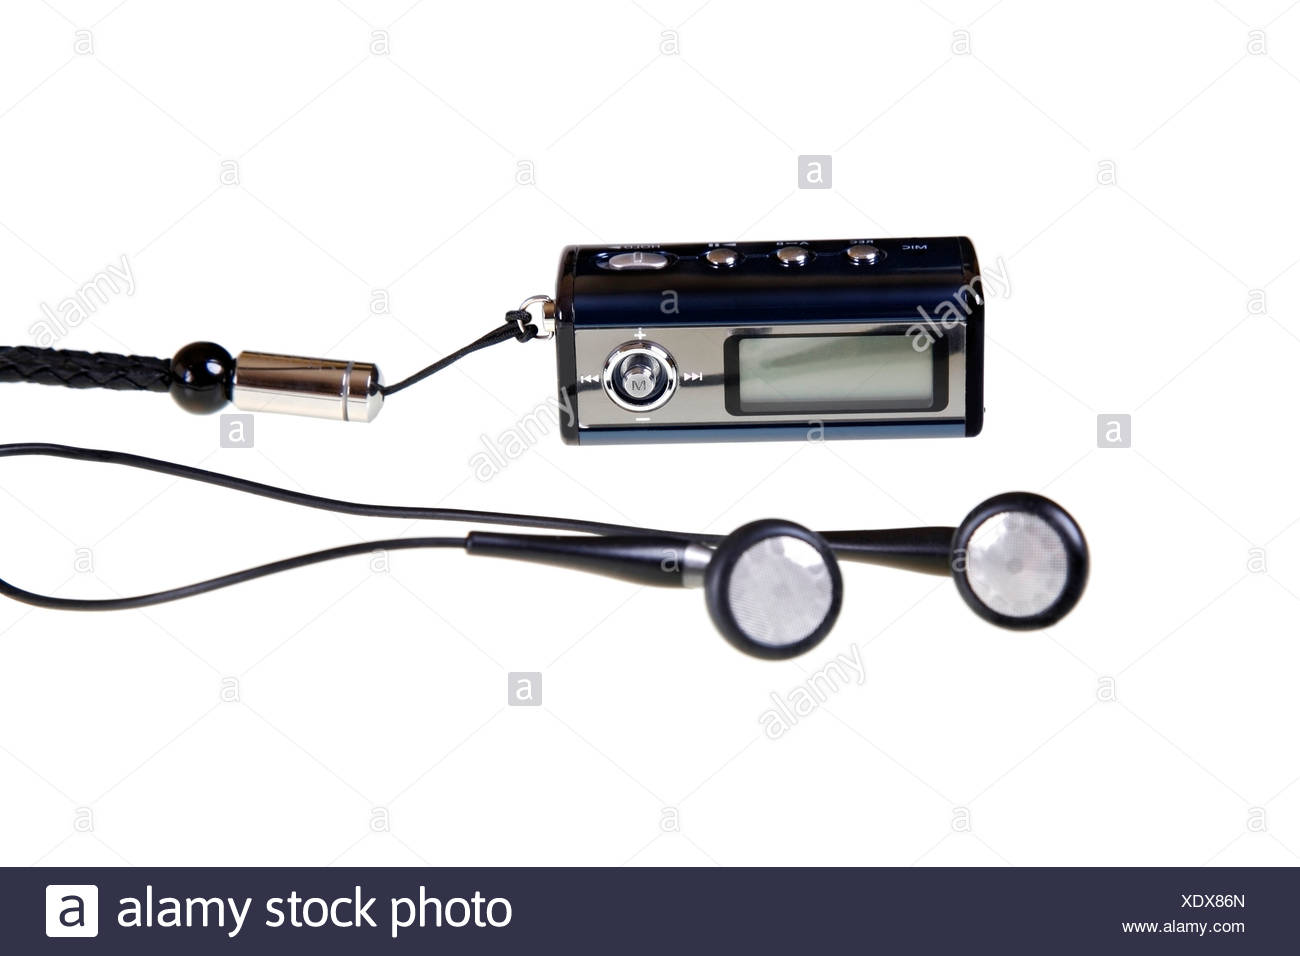 MP3 player, walkman with earphones (earbuds) and carrying strap, cutout - Stock Image